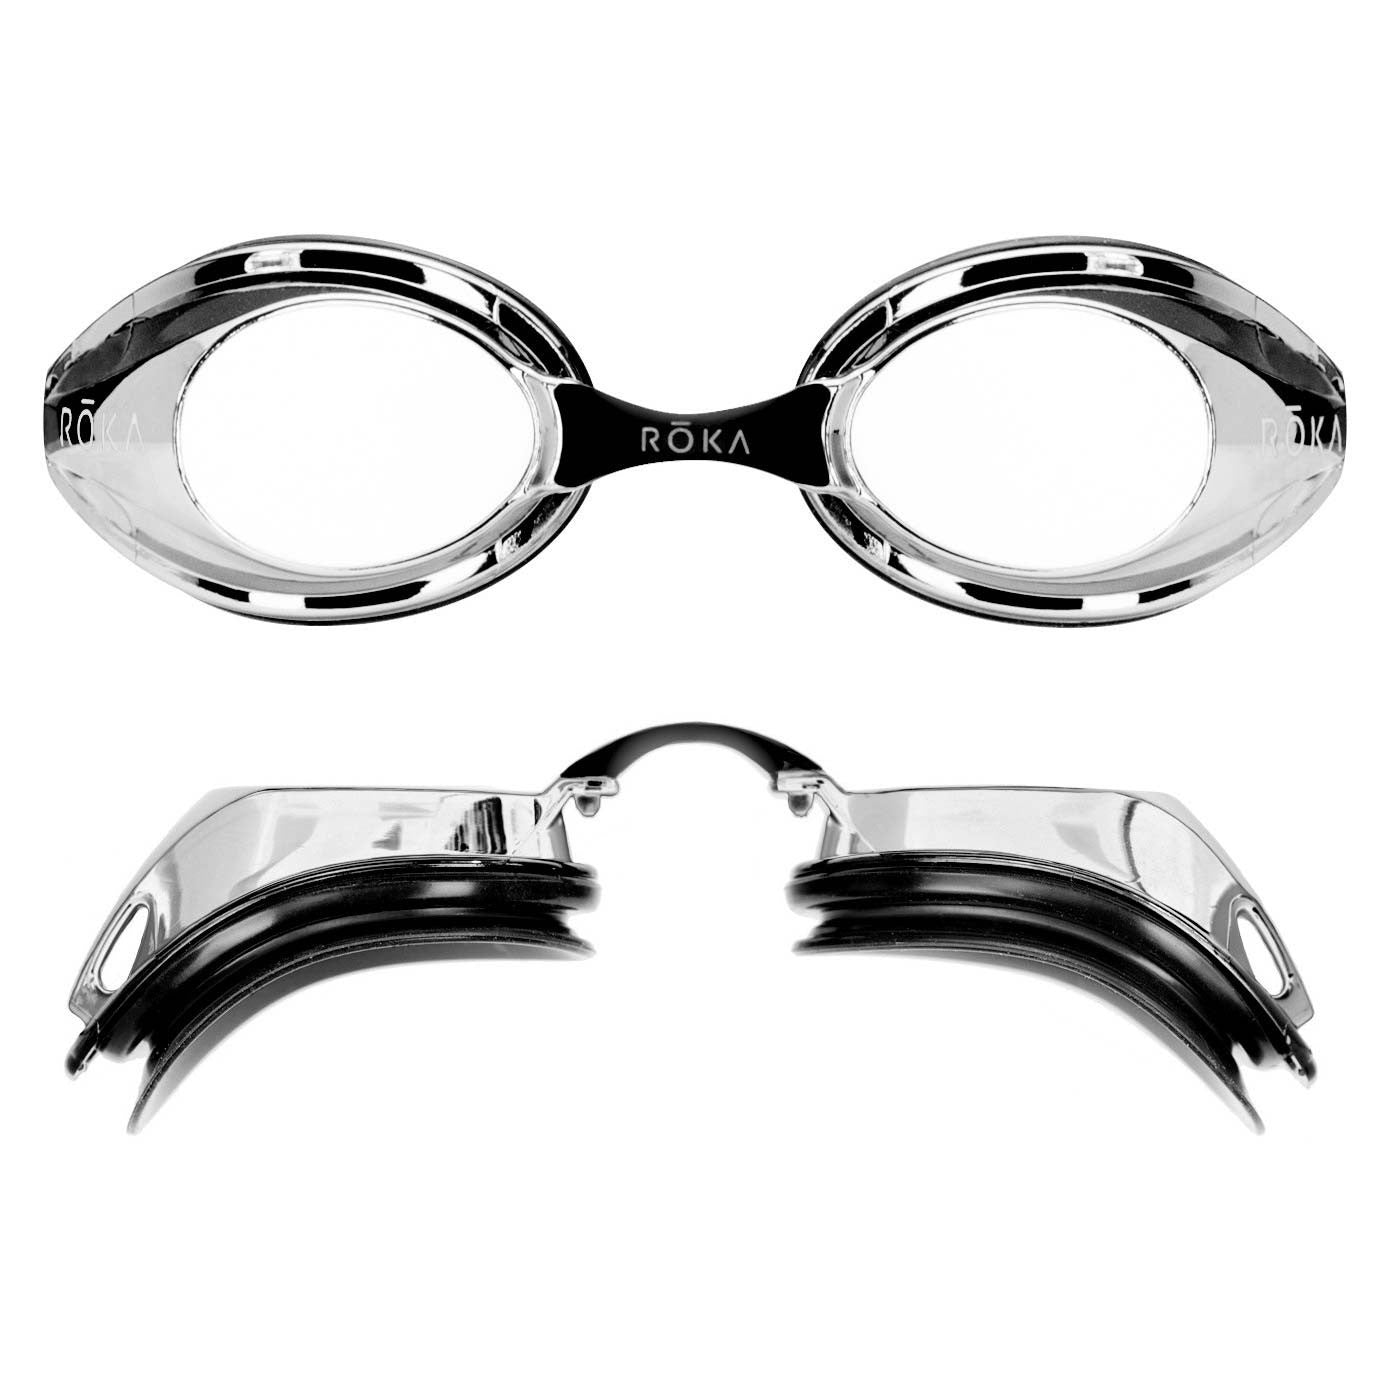 c58504d066 F1 Swim Goggles - Competition Swim Goggles